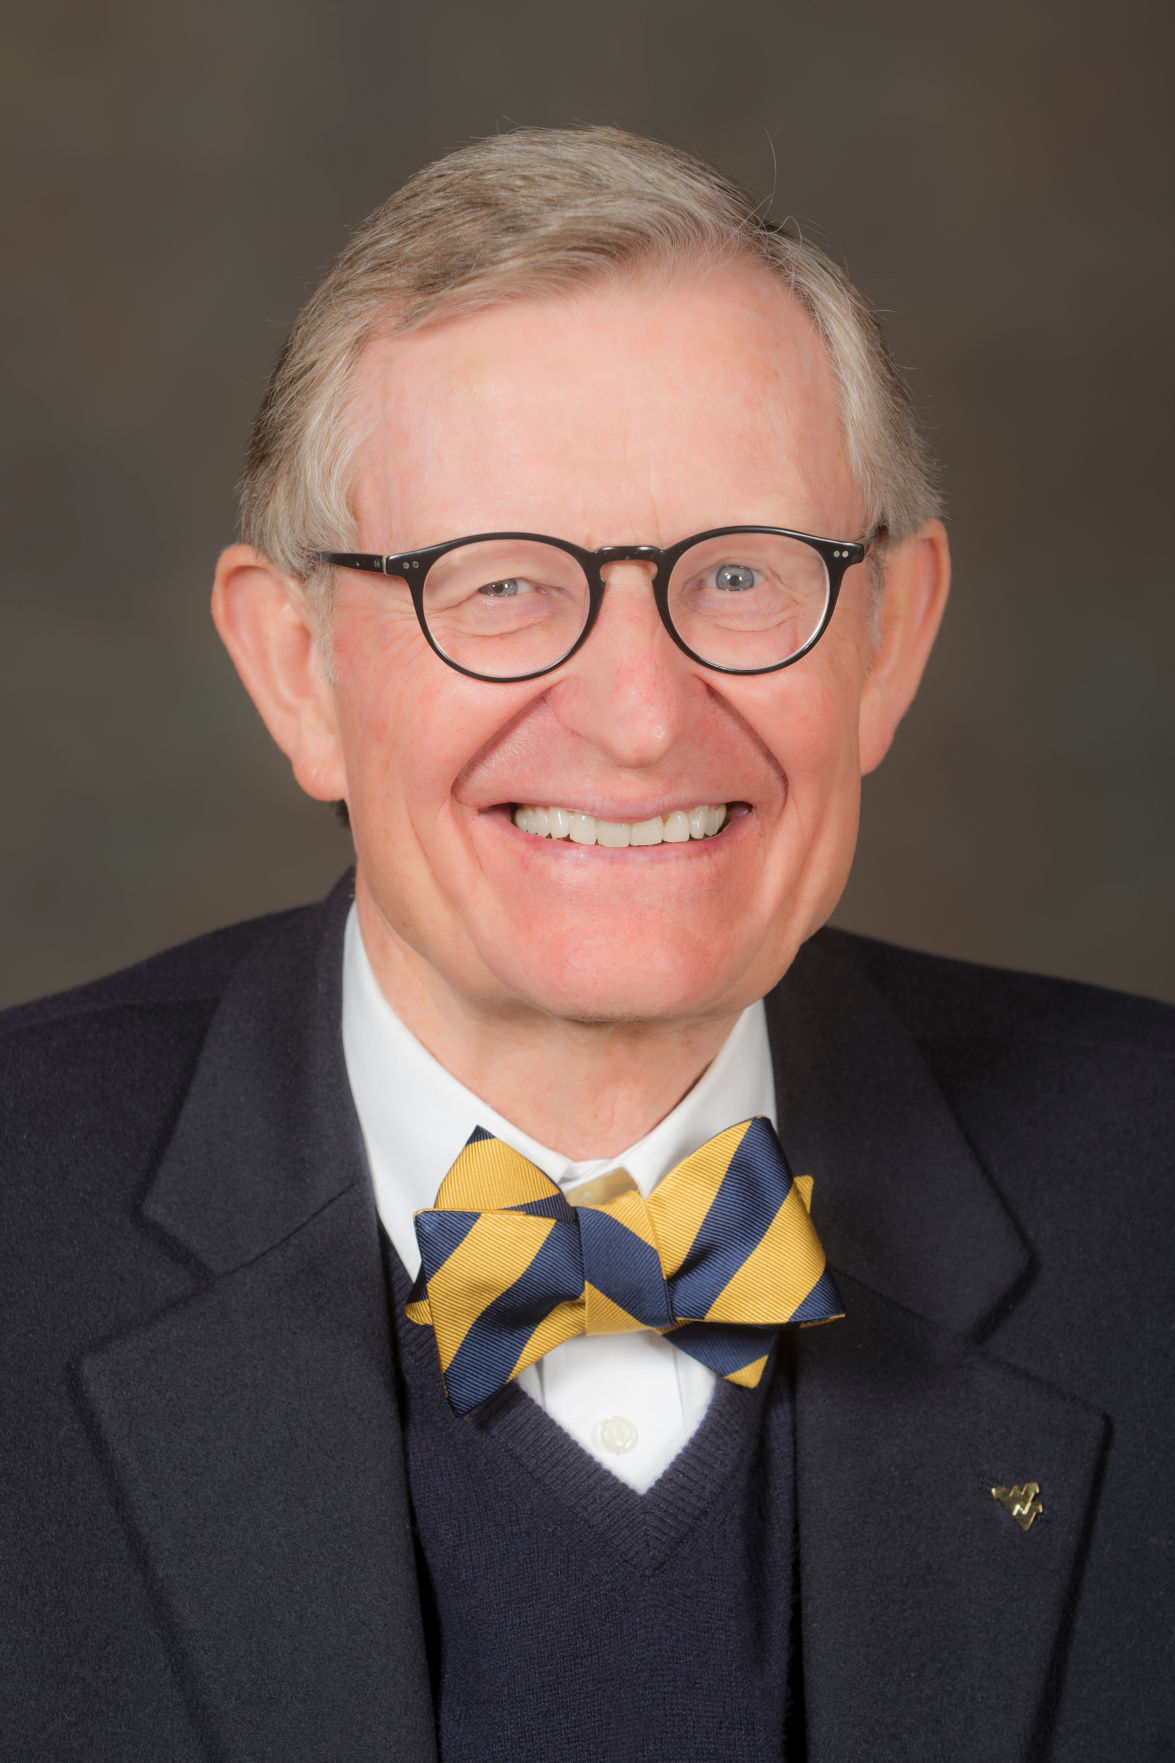 E. Gordon Gee headshot.